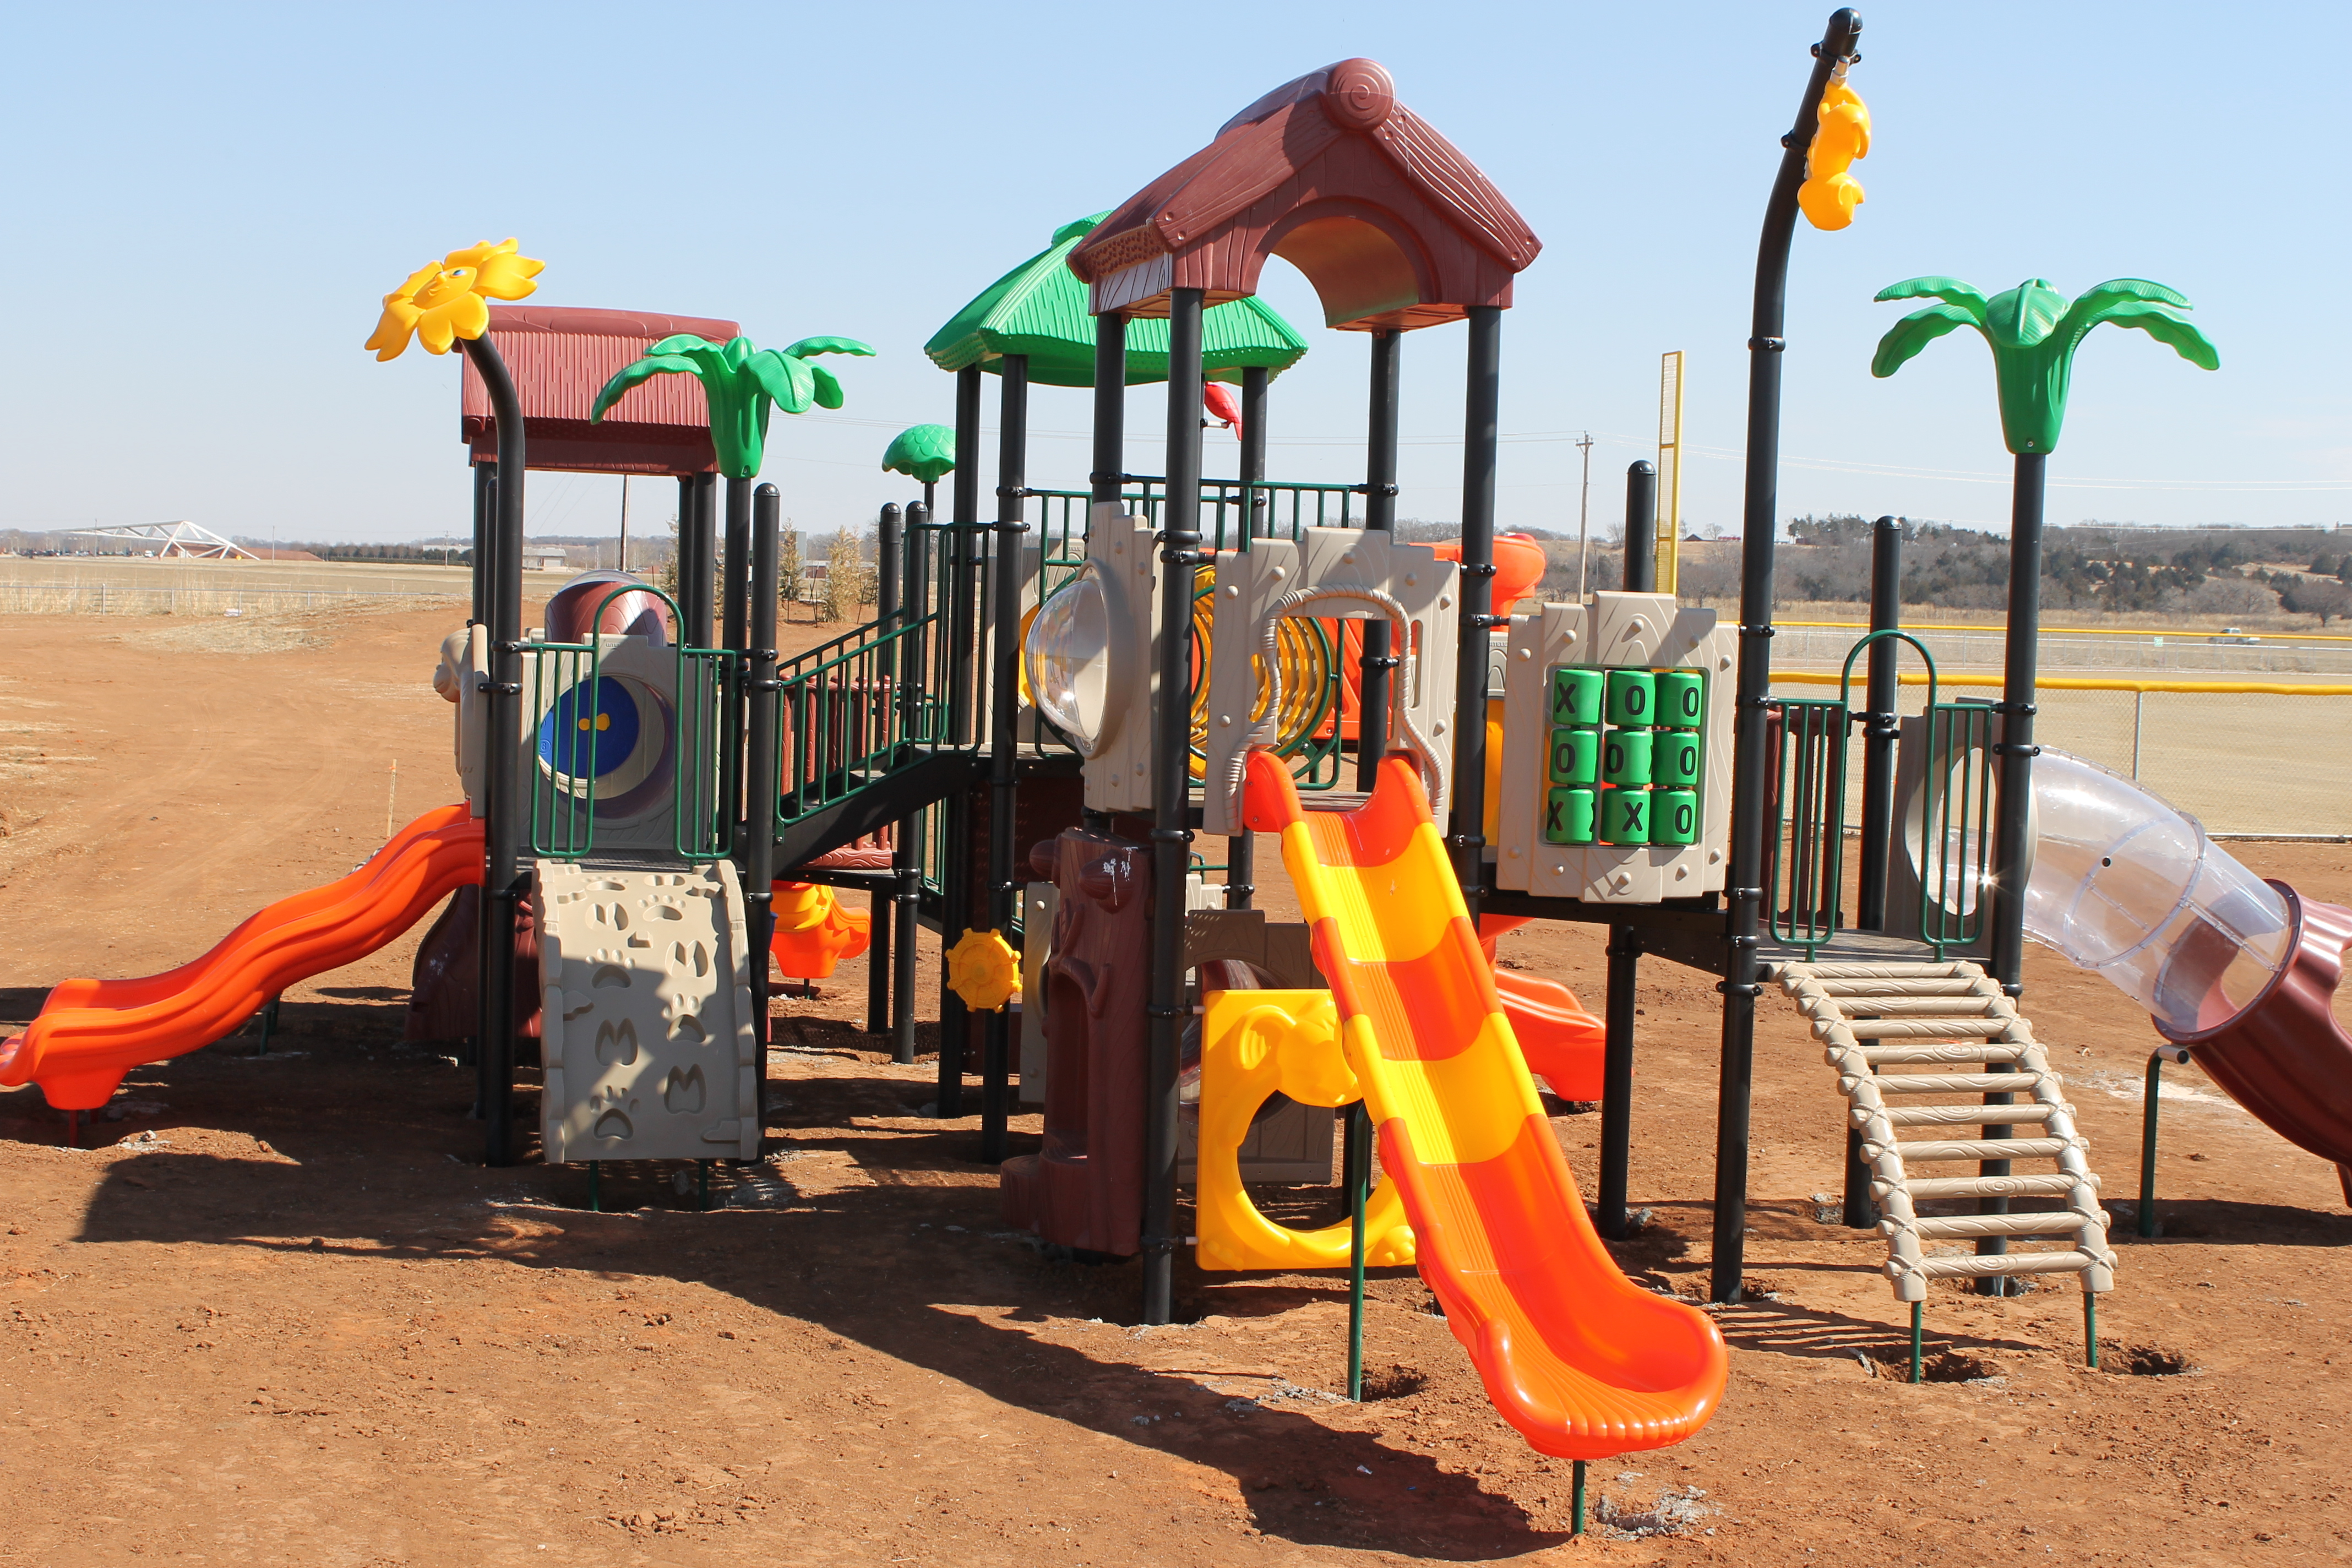 Noahs Park and Playgrounds, LLC image 2